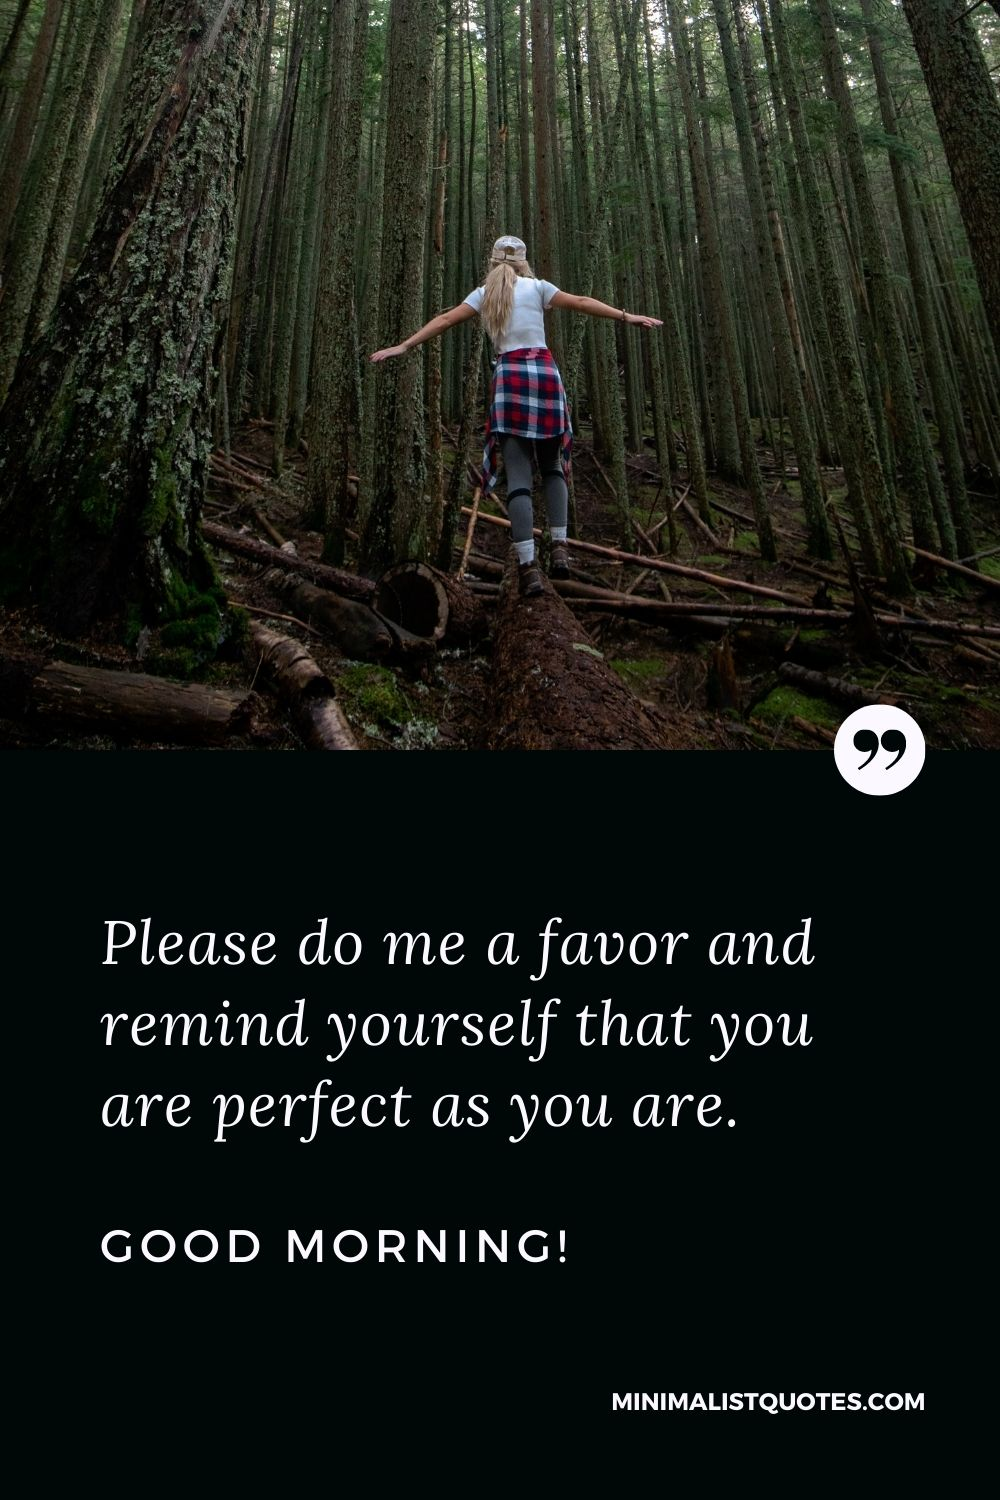 Morning Quote, Wish & Message With Image: Please do me a favor and remind yourself that you are perfect as you are. Good Morning!